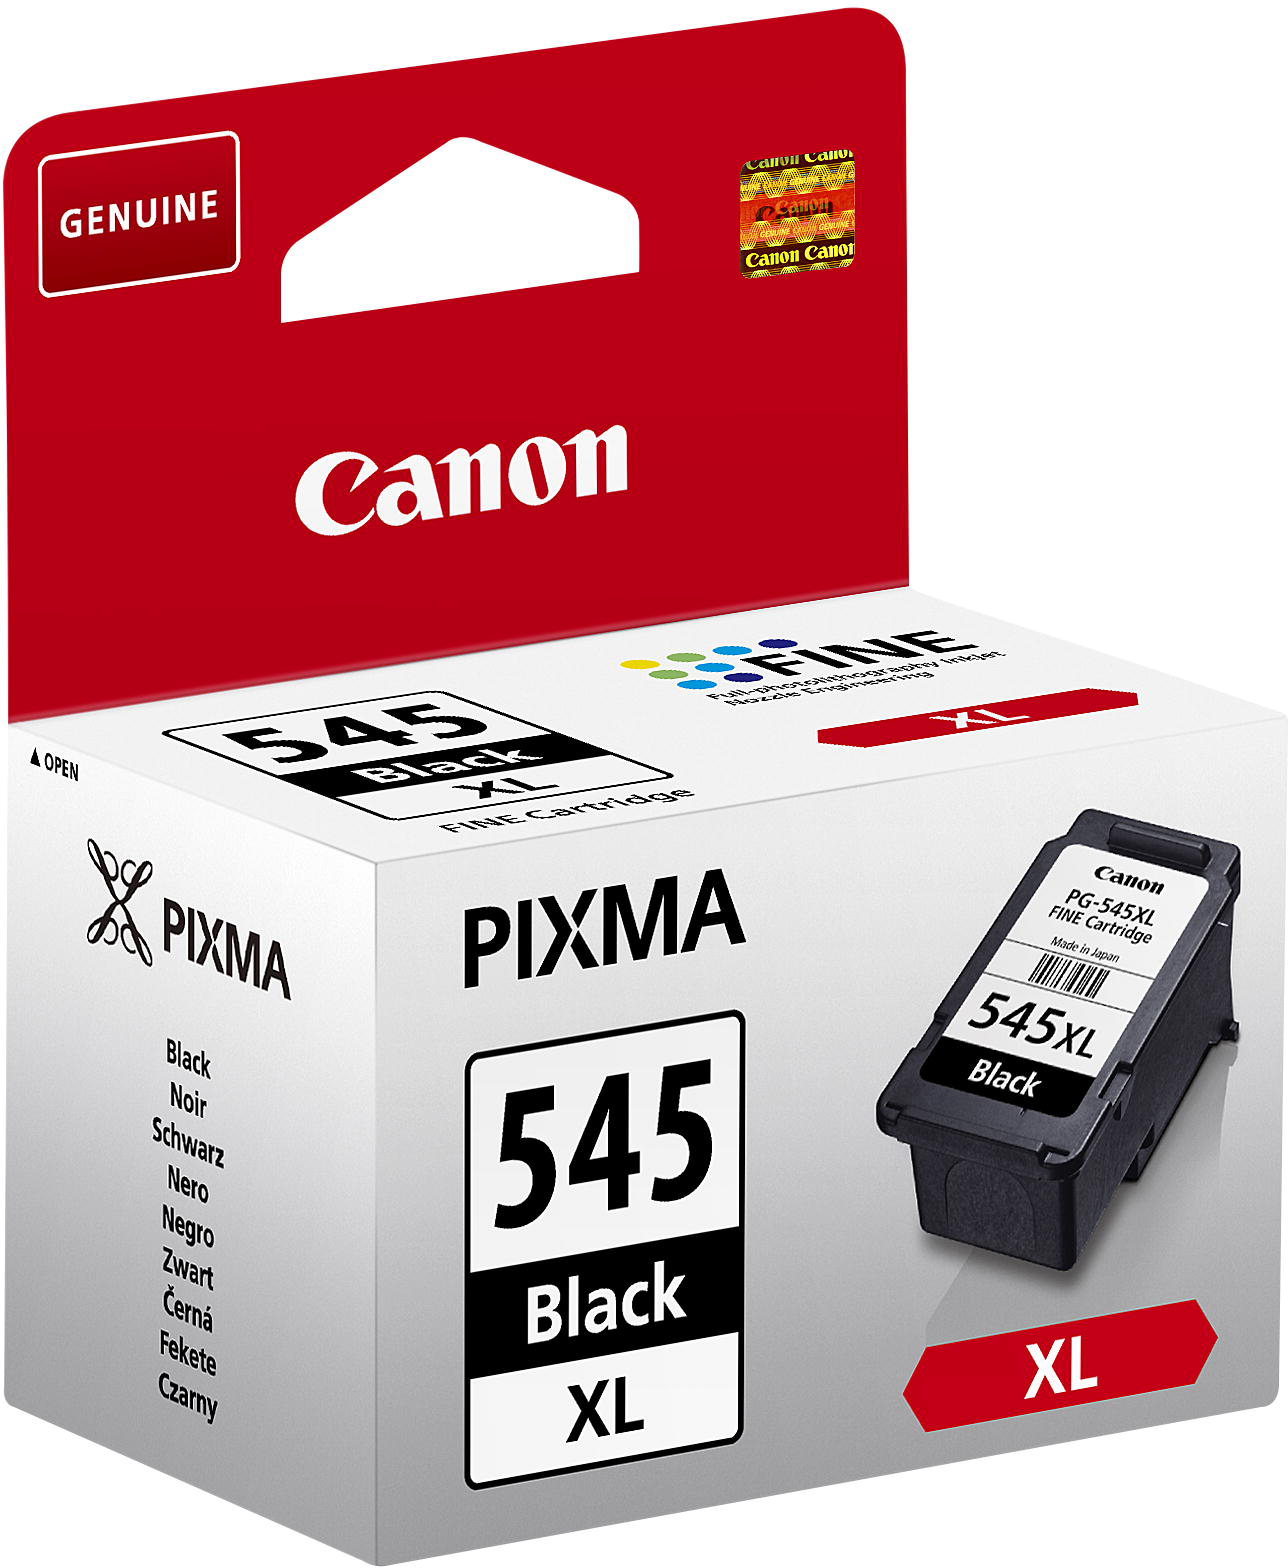 8286B001 Canon Canon PG-545XL - High Yield - Black - Original - Ink Cartridge - For PIXMA IP2850, MG2450, MG2550, MG2555, MG2950, MX495 - C2000